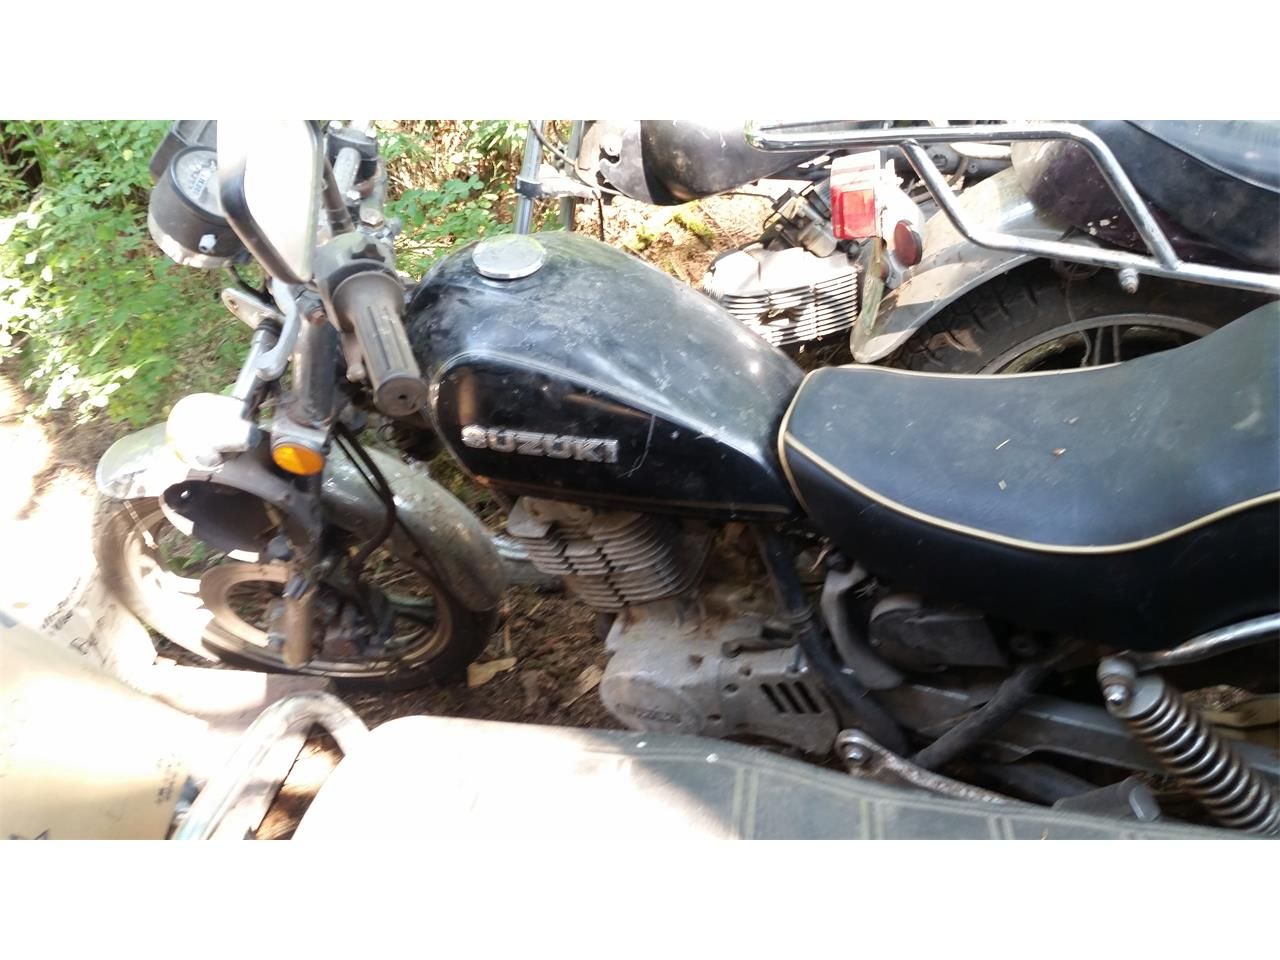 1980 Suzuki Motorcycle (CC-1196838) for sale in Carnation, Washington